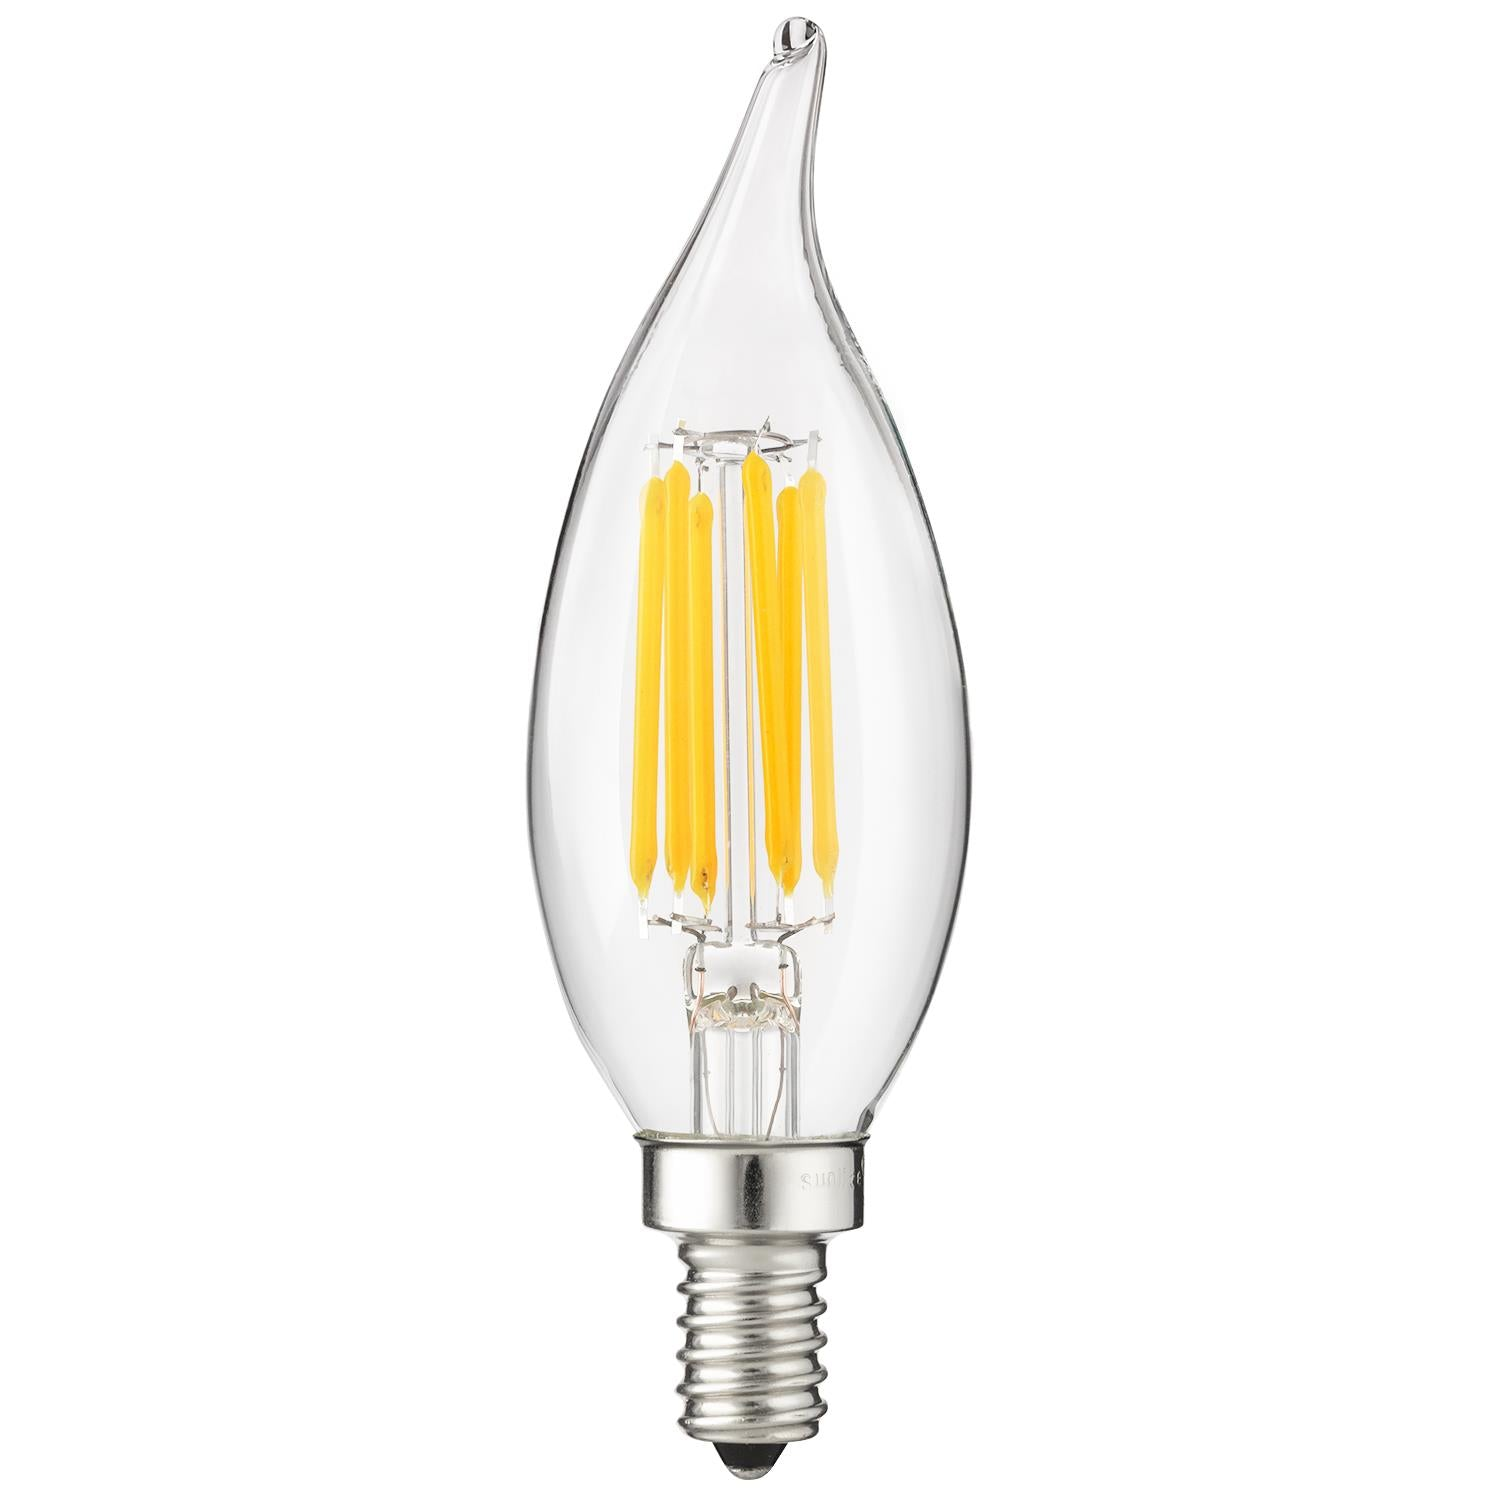 SUNLITE 81104-SU 6 Watt Flame Tip Lamp Medium (E26) Base Cool White 4000K